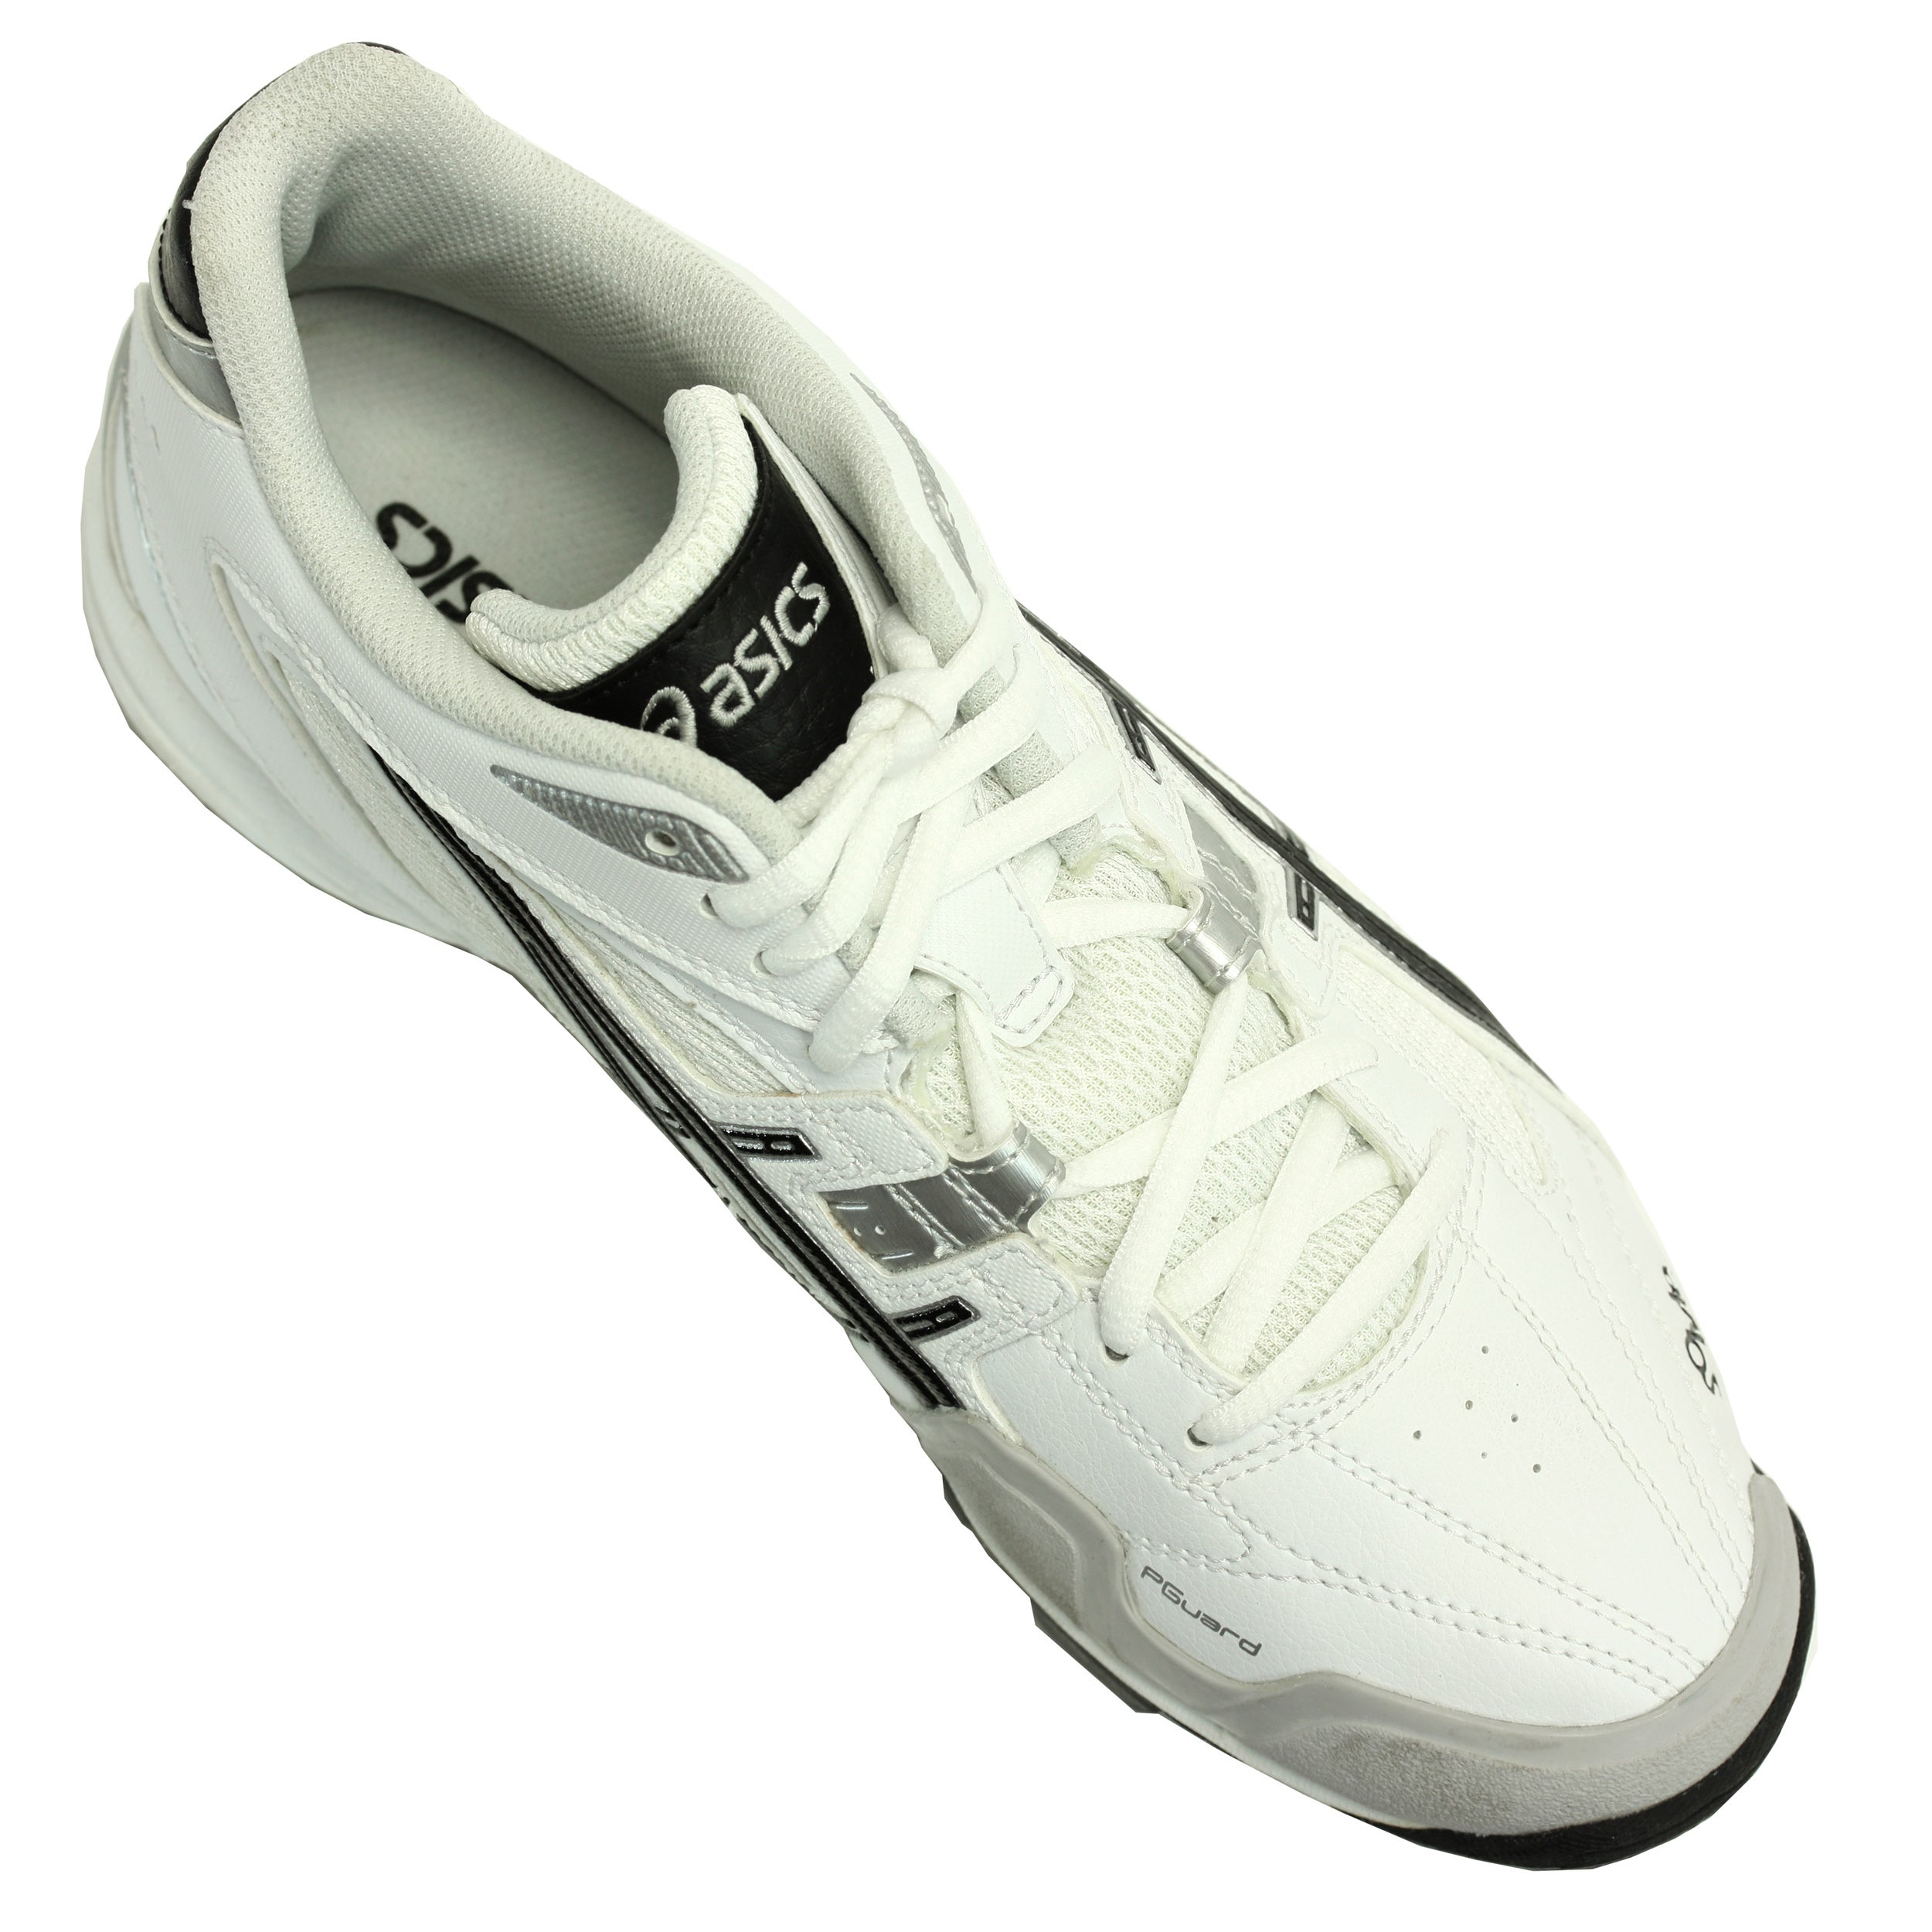 8f99c39418 Shop Asics Men's 'Gel V' White Mid-cut Field Shoes - Free Shipping Today -  Overstock - 8251730